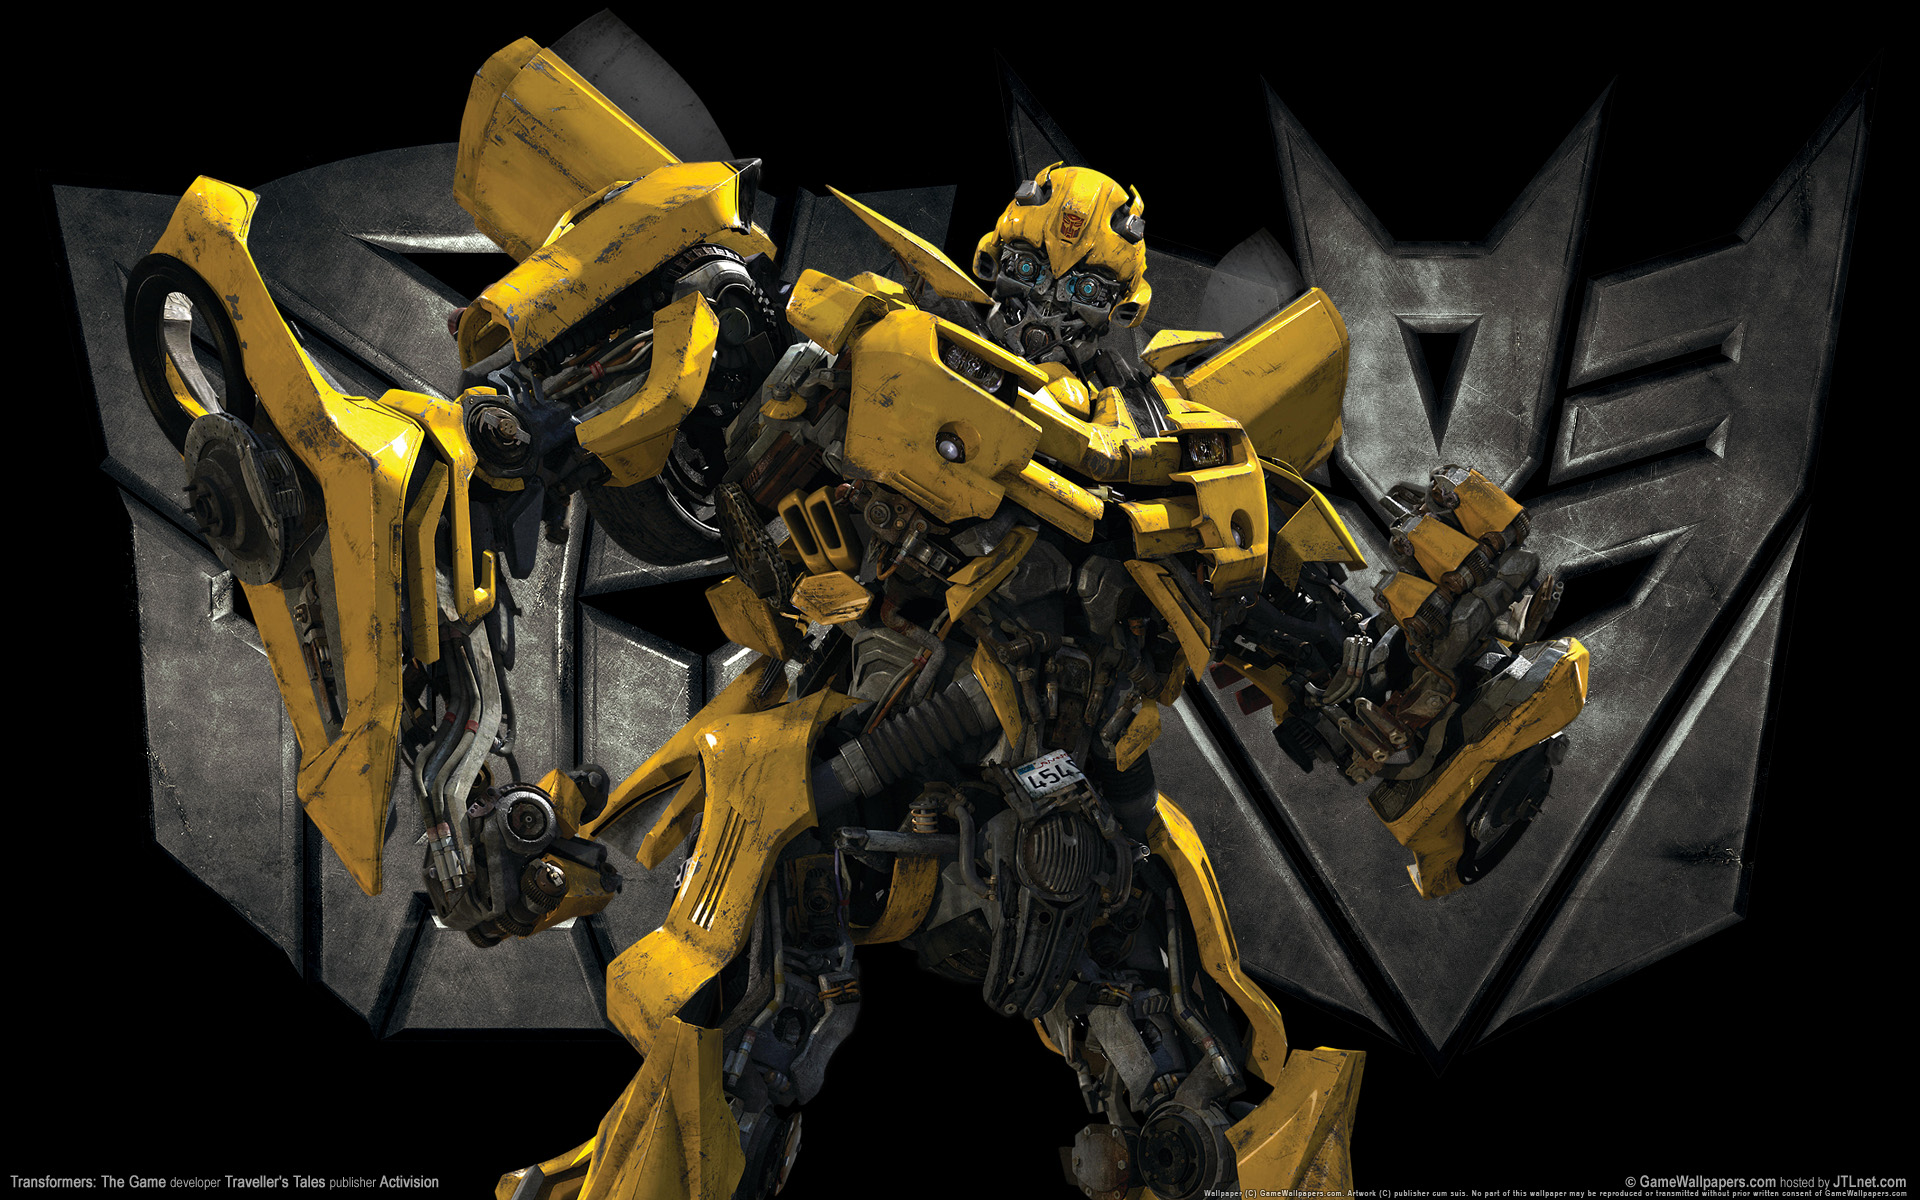 Transformers The Game wallpaper 33493 1920x1200